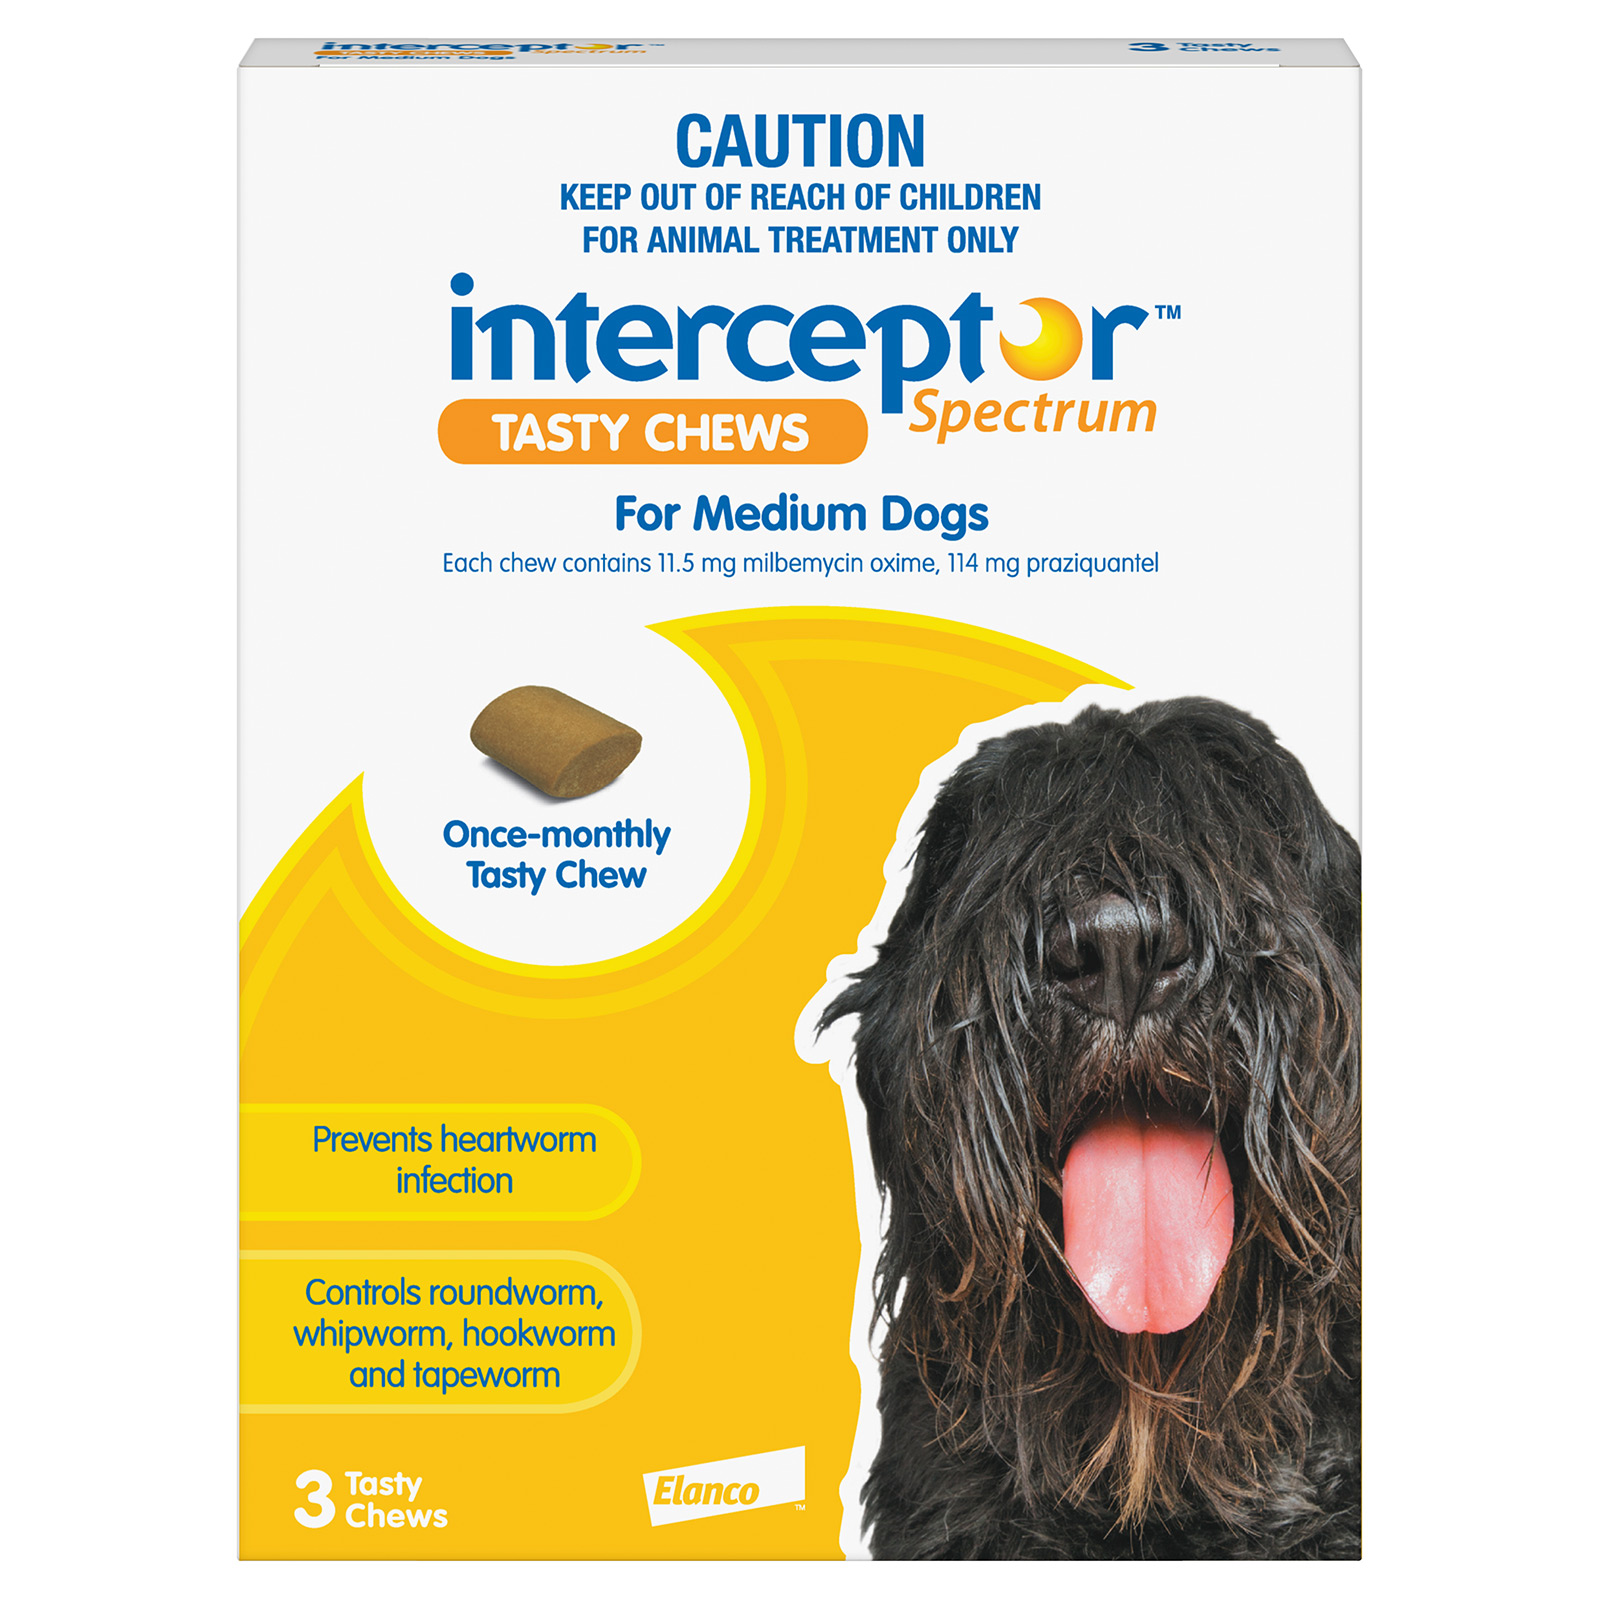 Interceptor Spectrum Tasty Chews